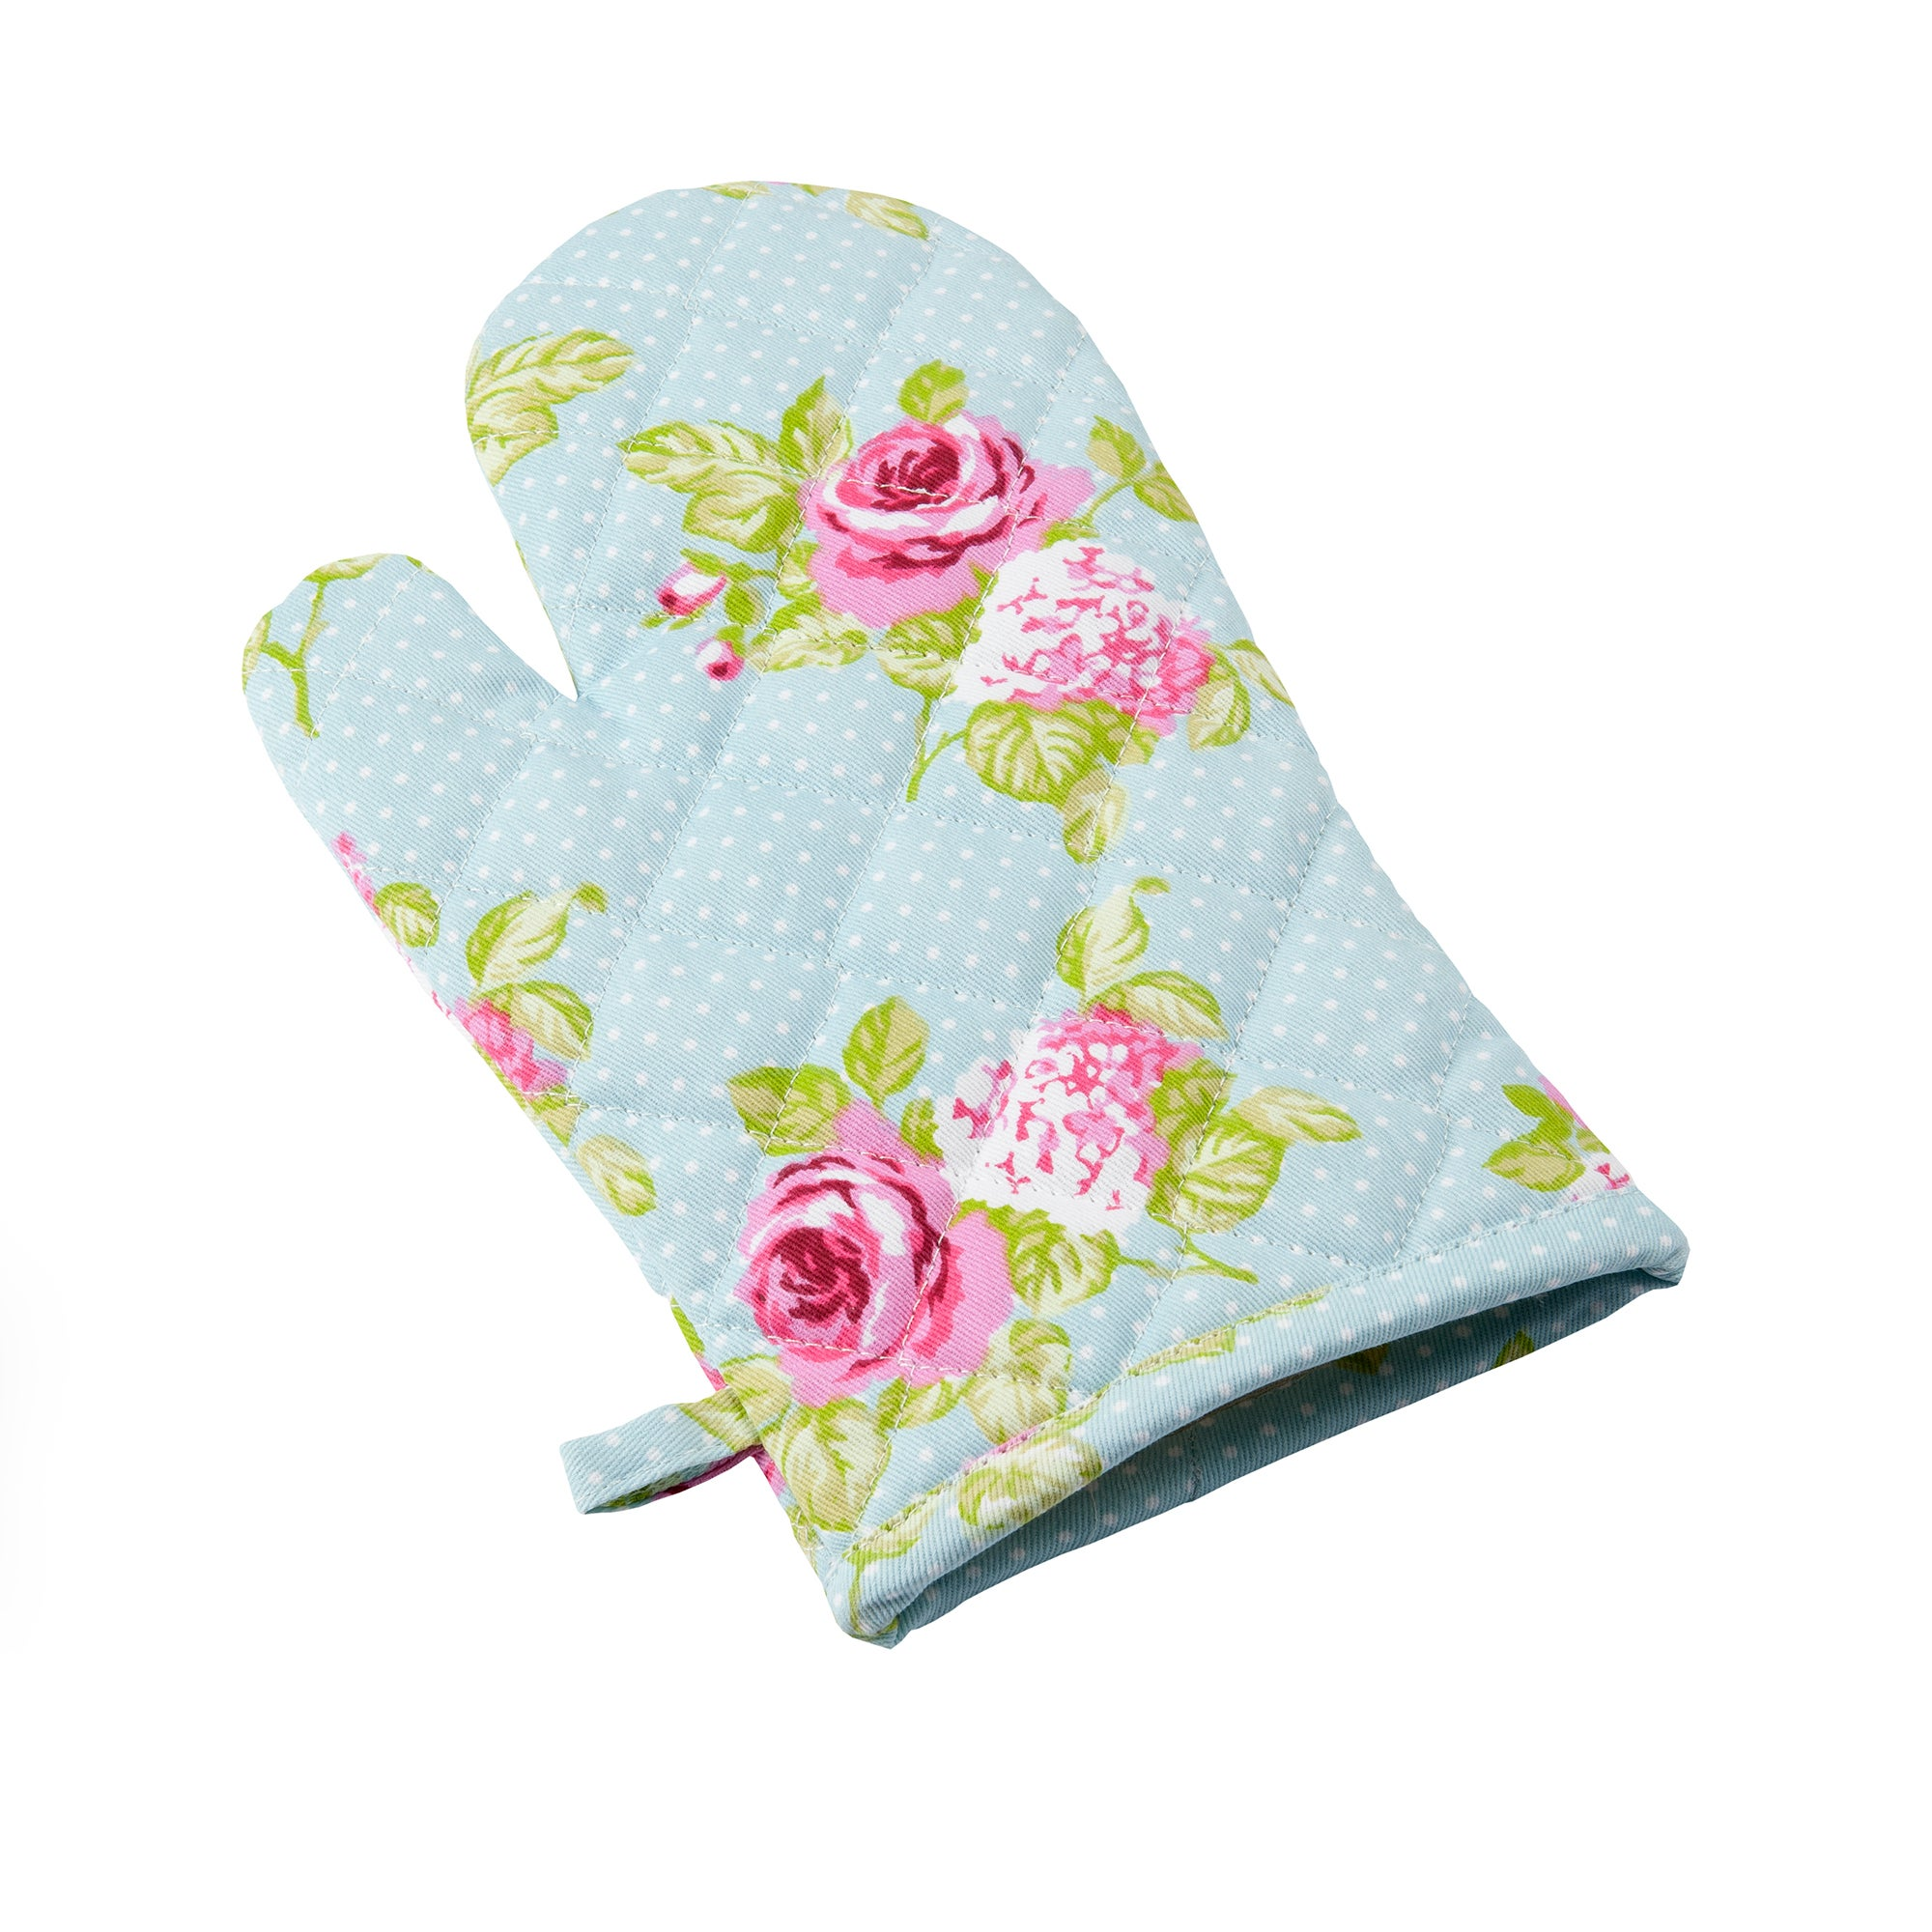 Rose and Ellis Clarendon Single Oven Glove